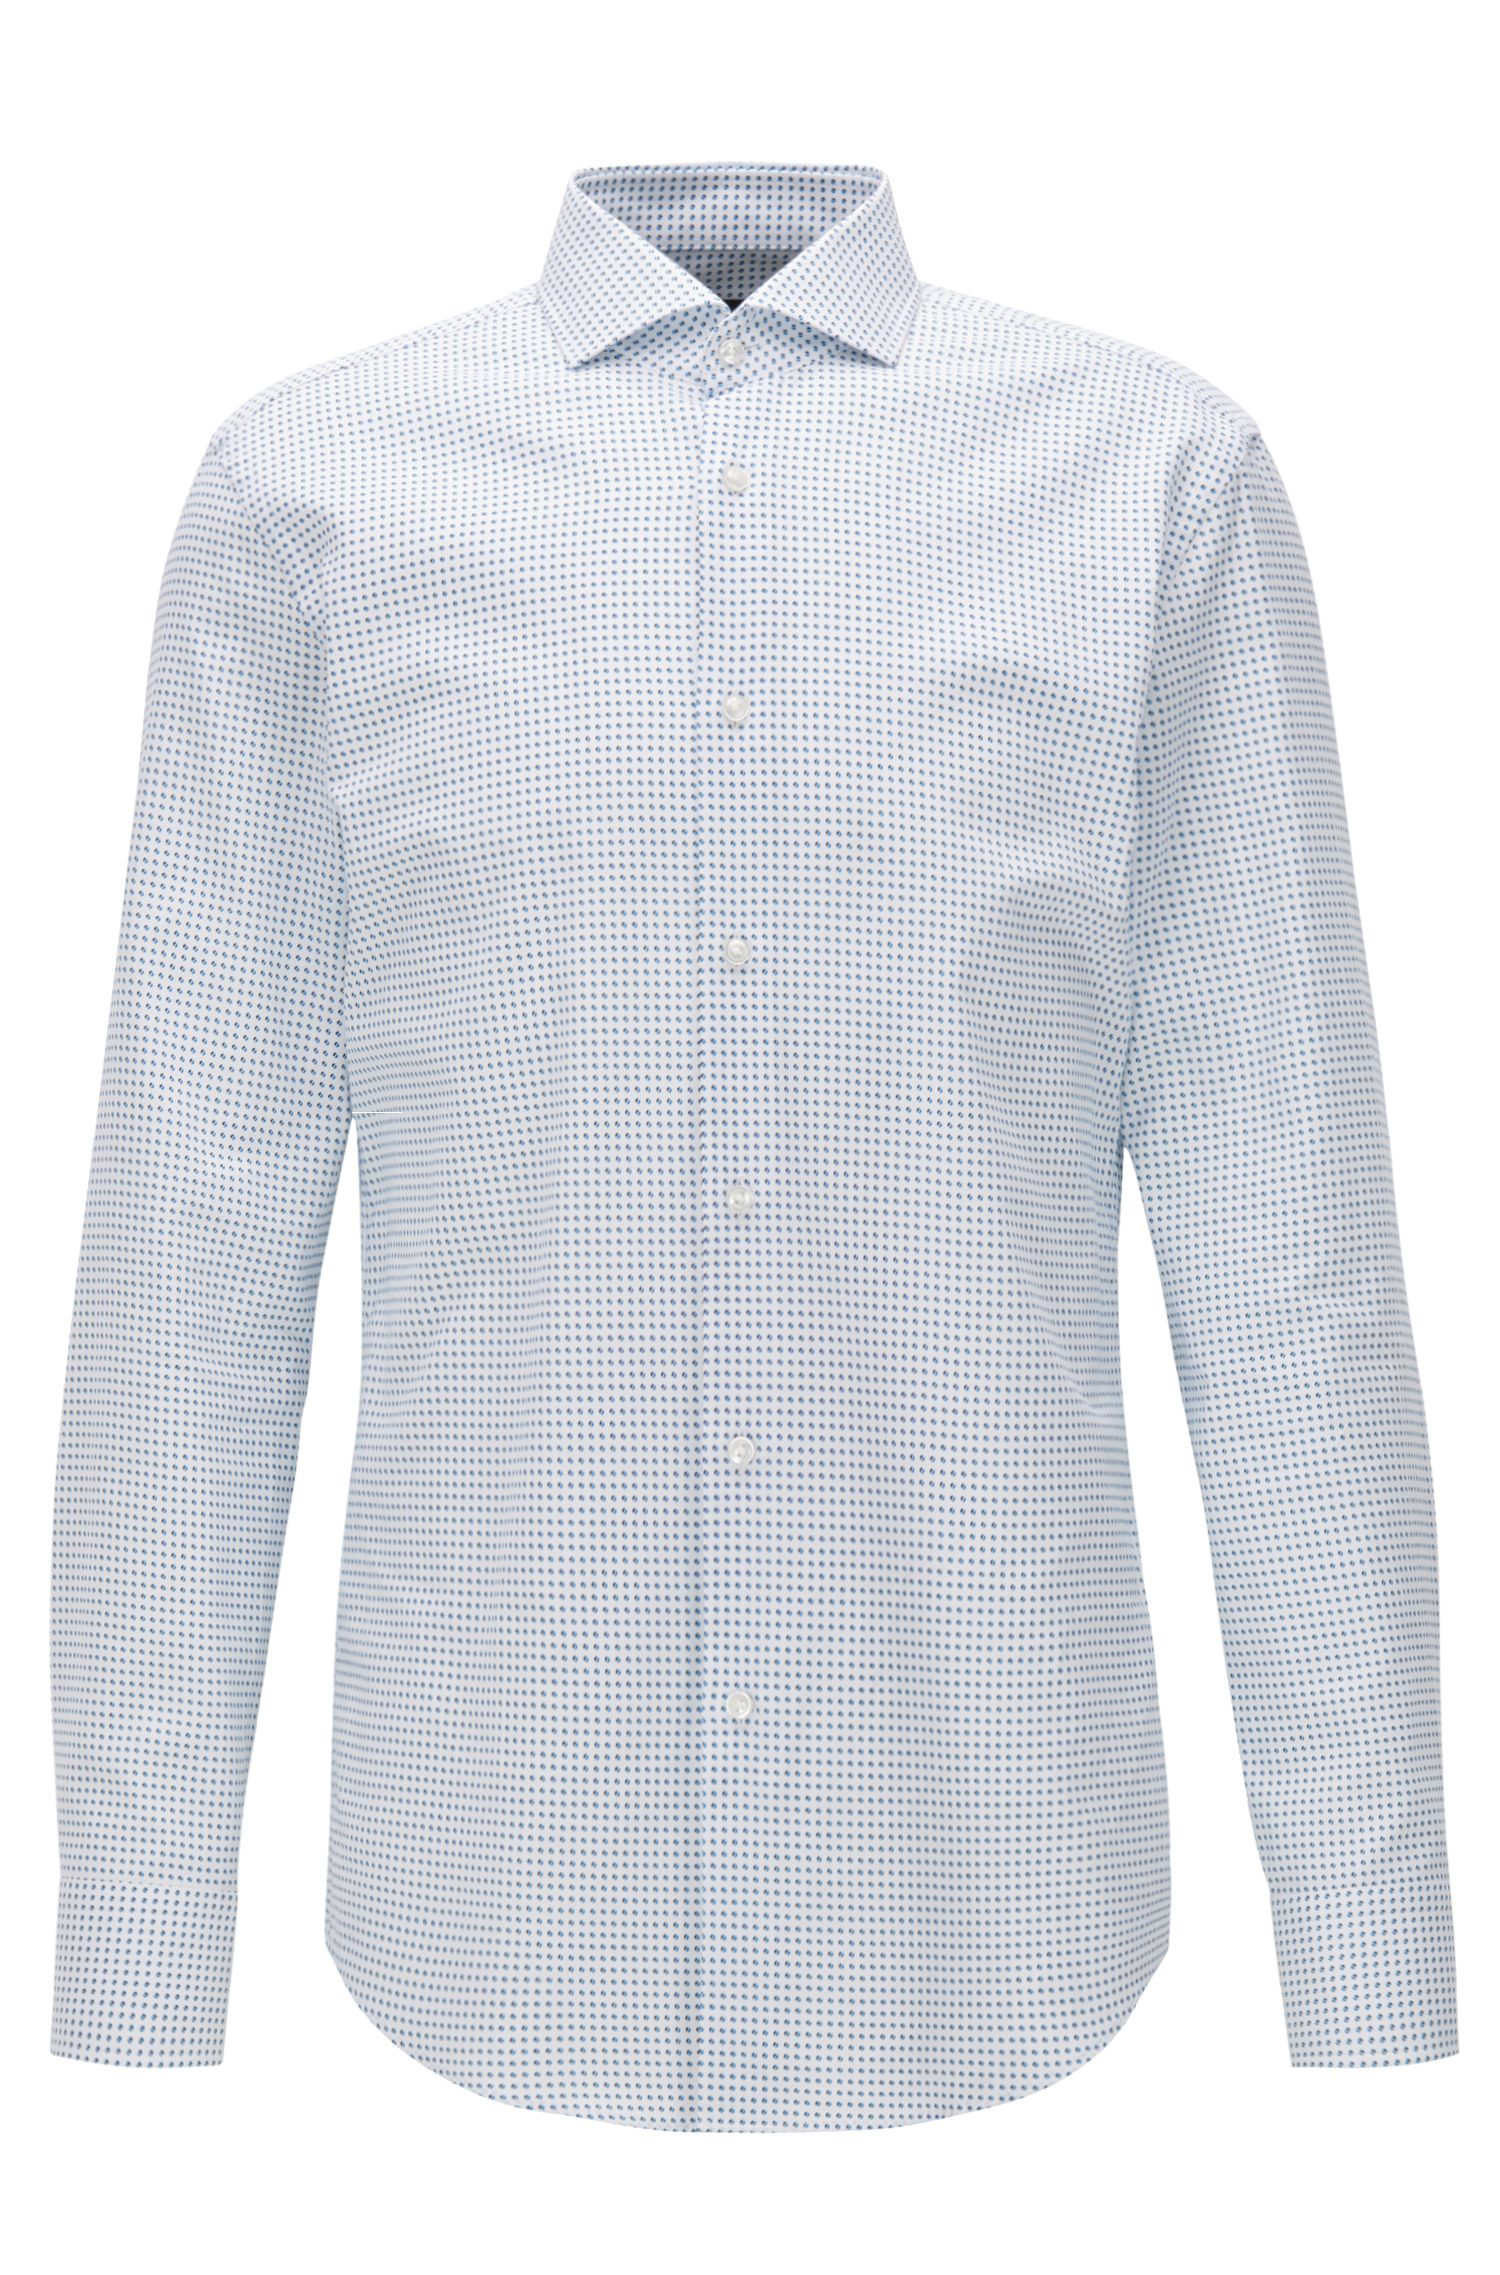 Dotted Cotton Dress Shirt, Slim Fit | Jason